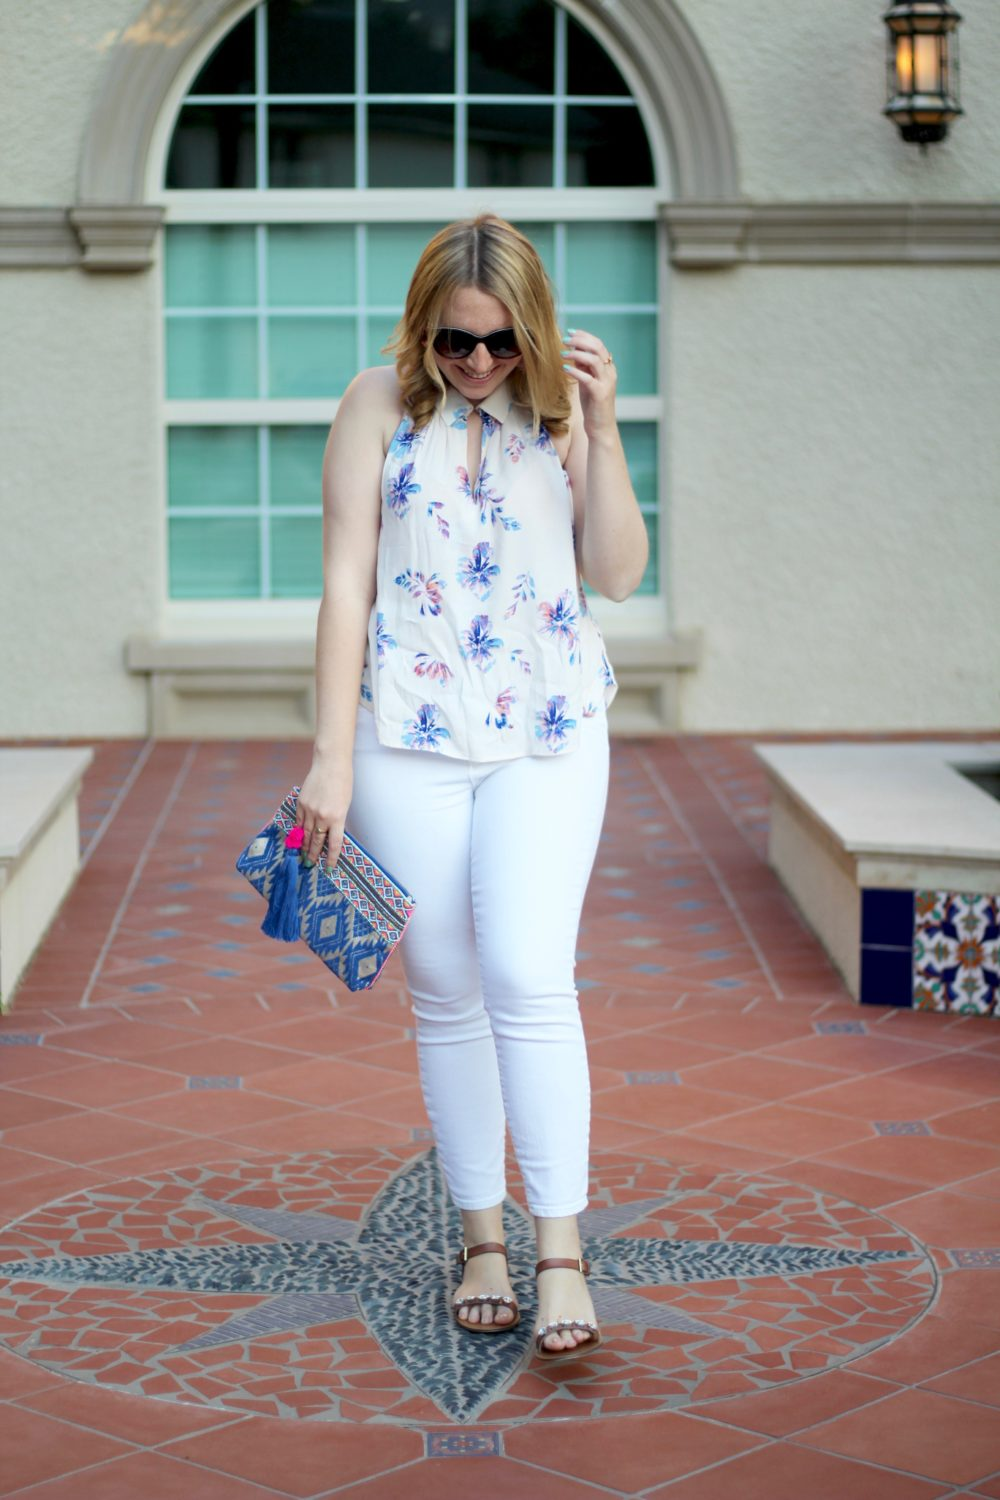 Floral Racerback Blouse, Rent the Runway top, ASTR shirt, sleeveless, j.crew toothpick white denim jeans, oasis clutch